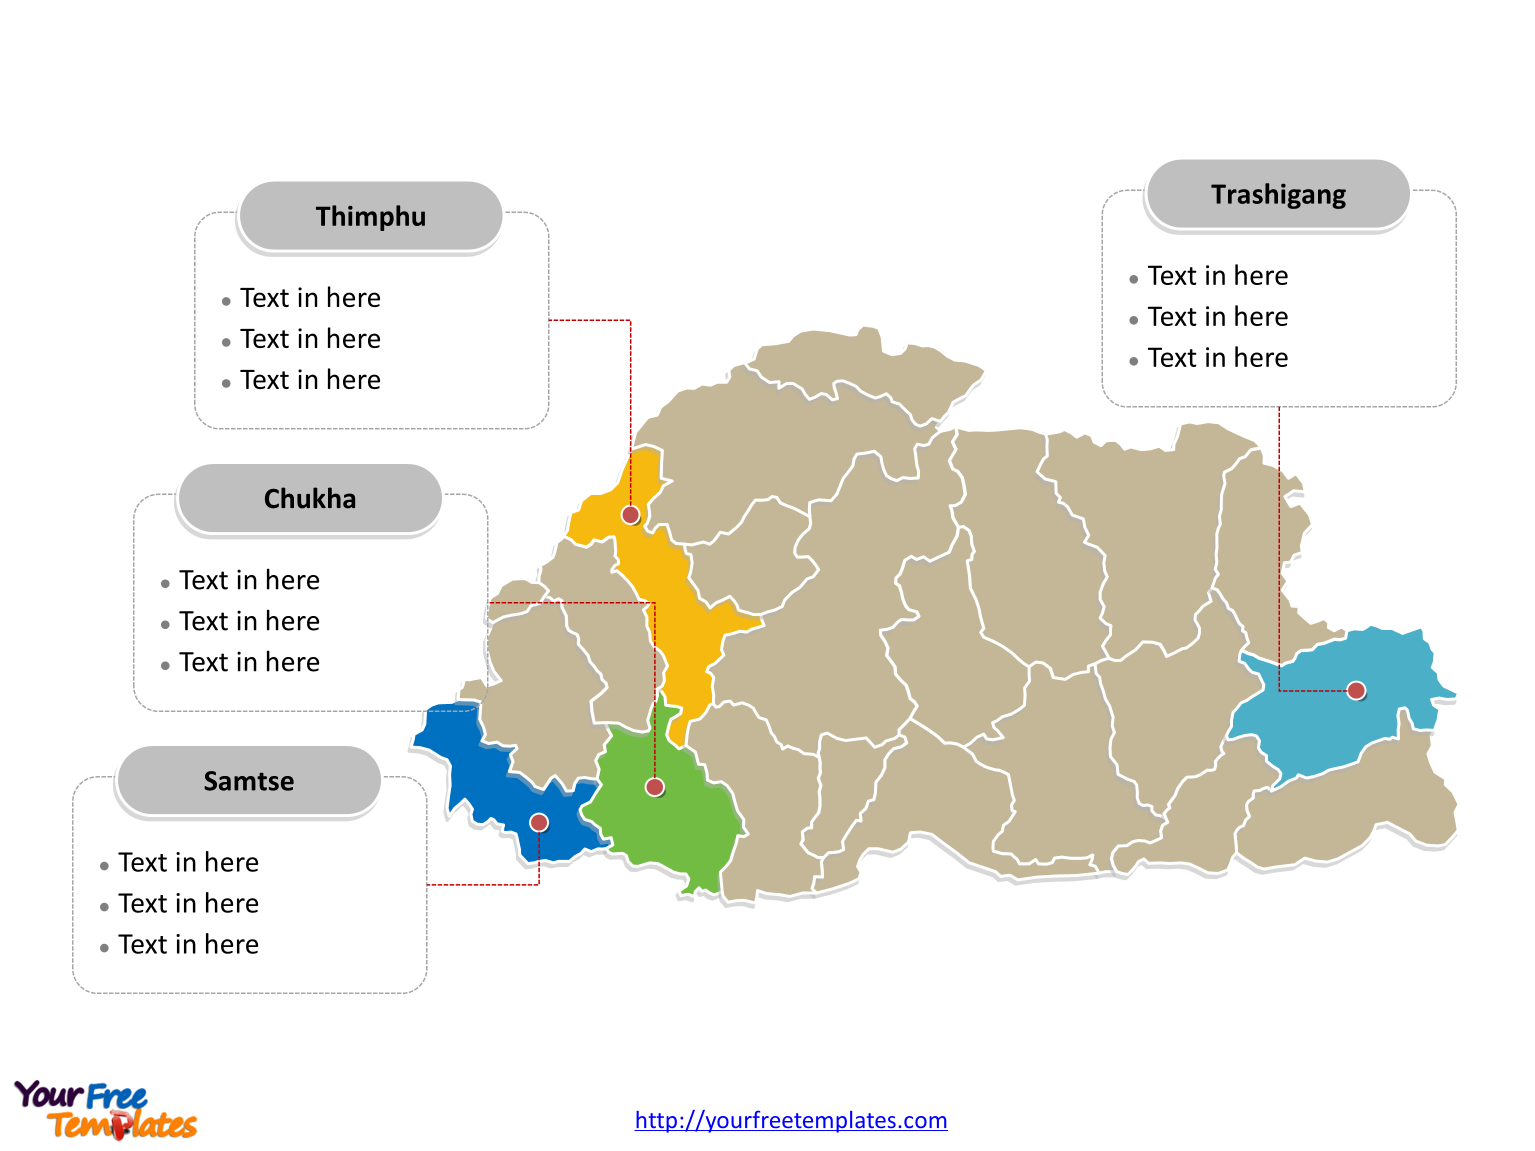 Bhutan Political map labeled with major districts